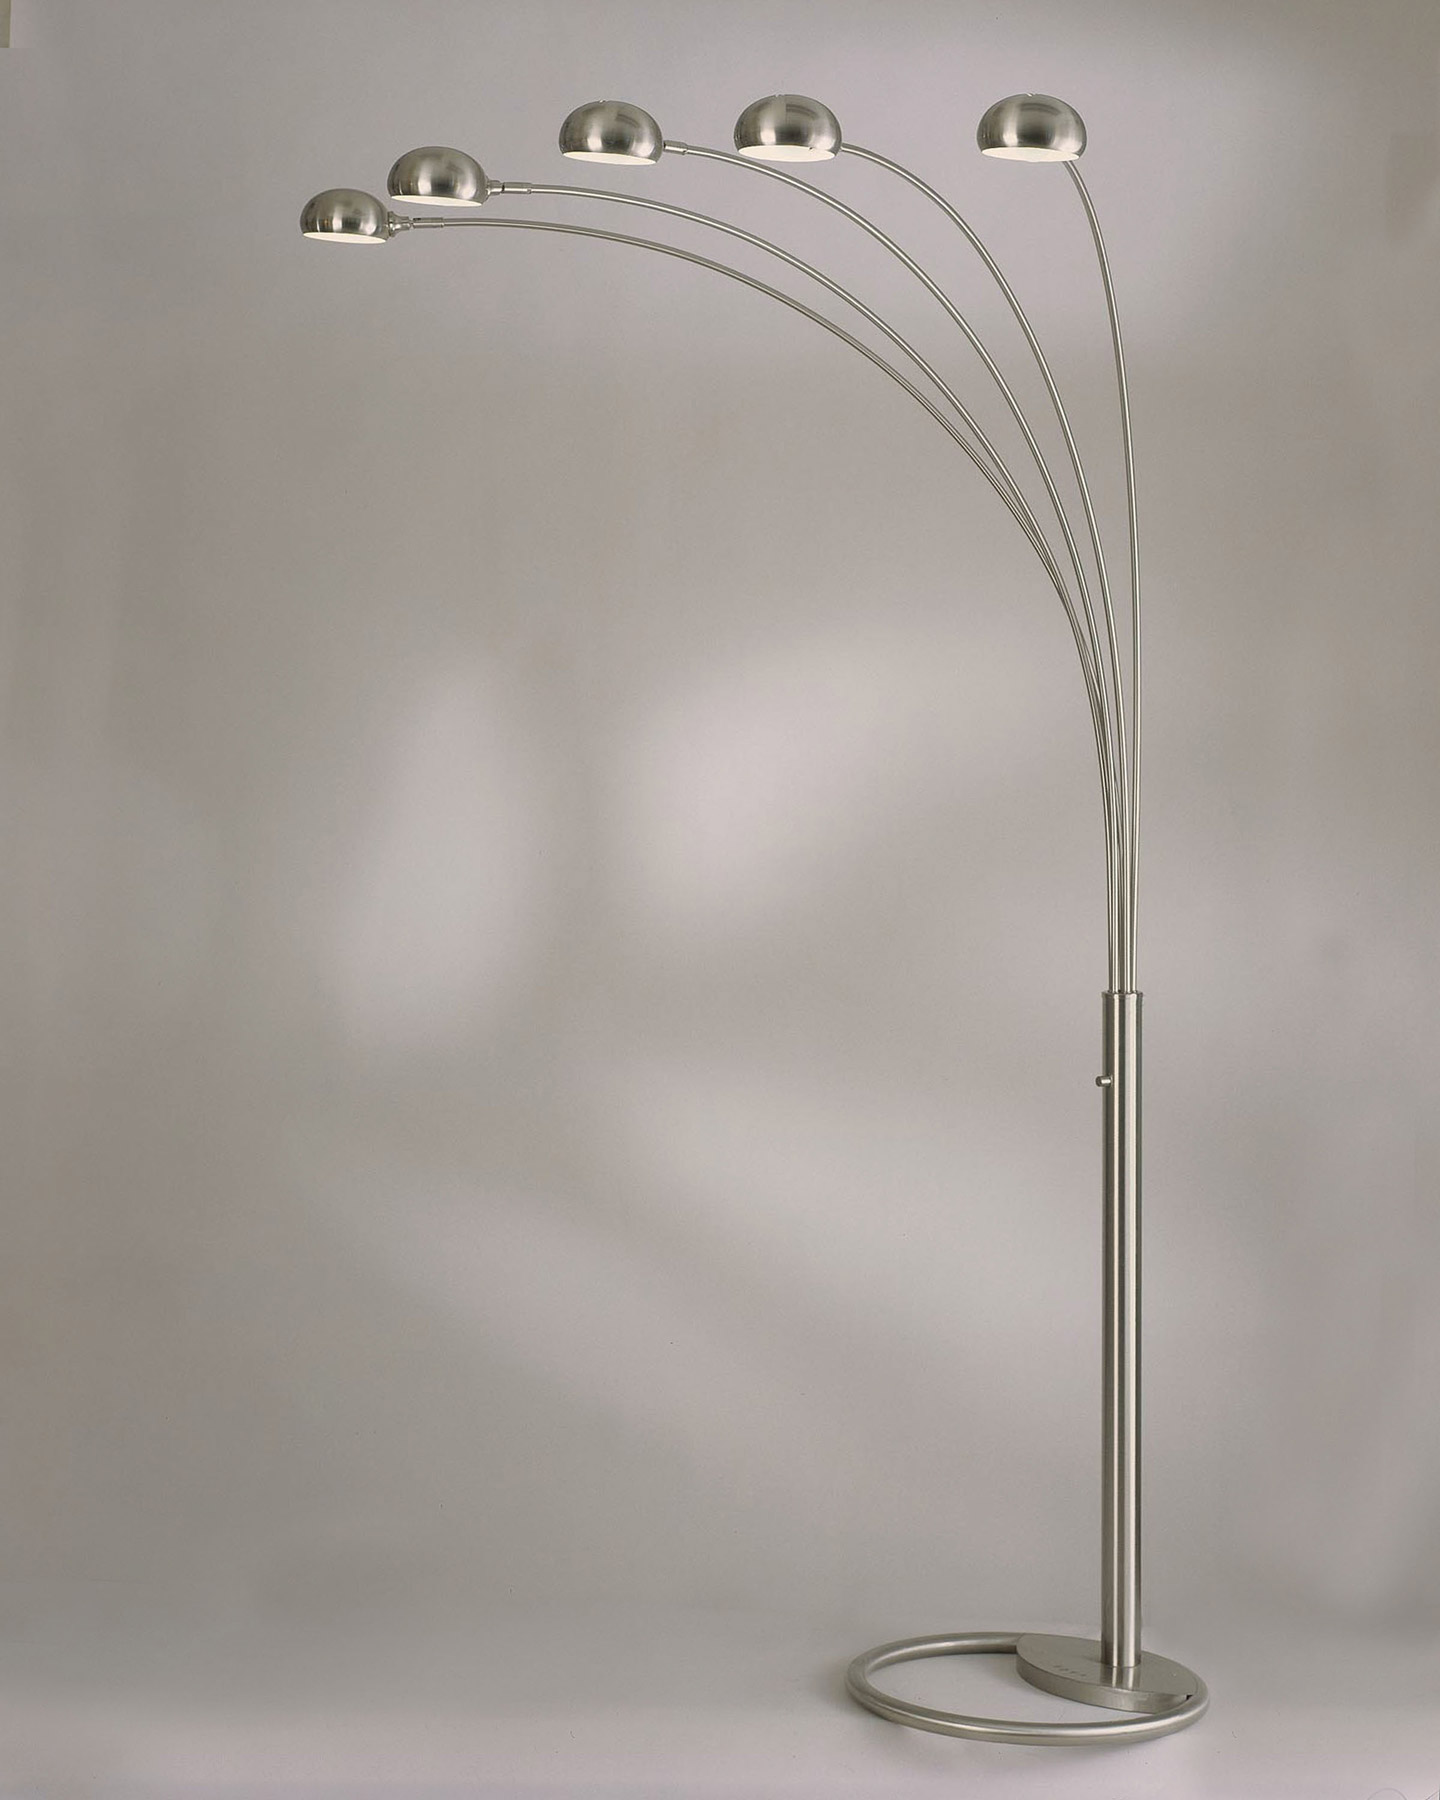 nova lighting 4231rx mushroom 5 light arc floor lamp - Arc Floor Lamps